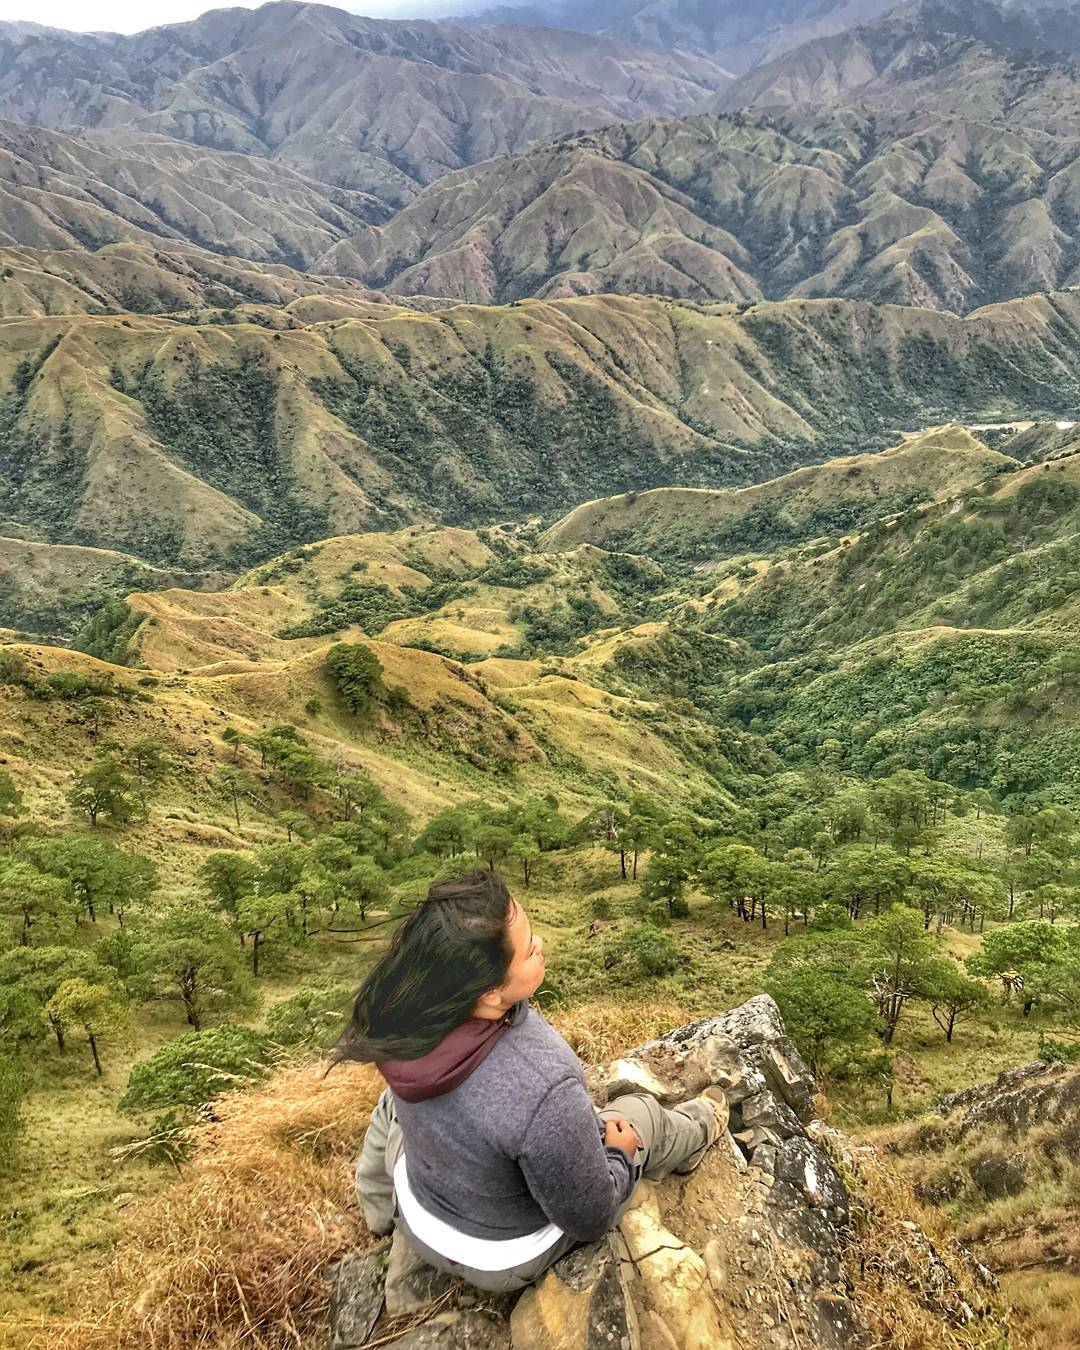 Mt. Pigingan, Itogon, Benguet by @sining_maningning on Instagram